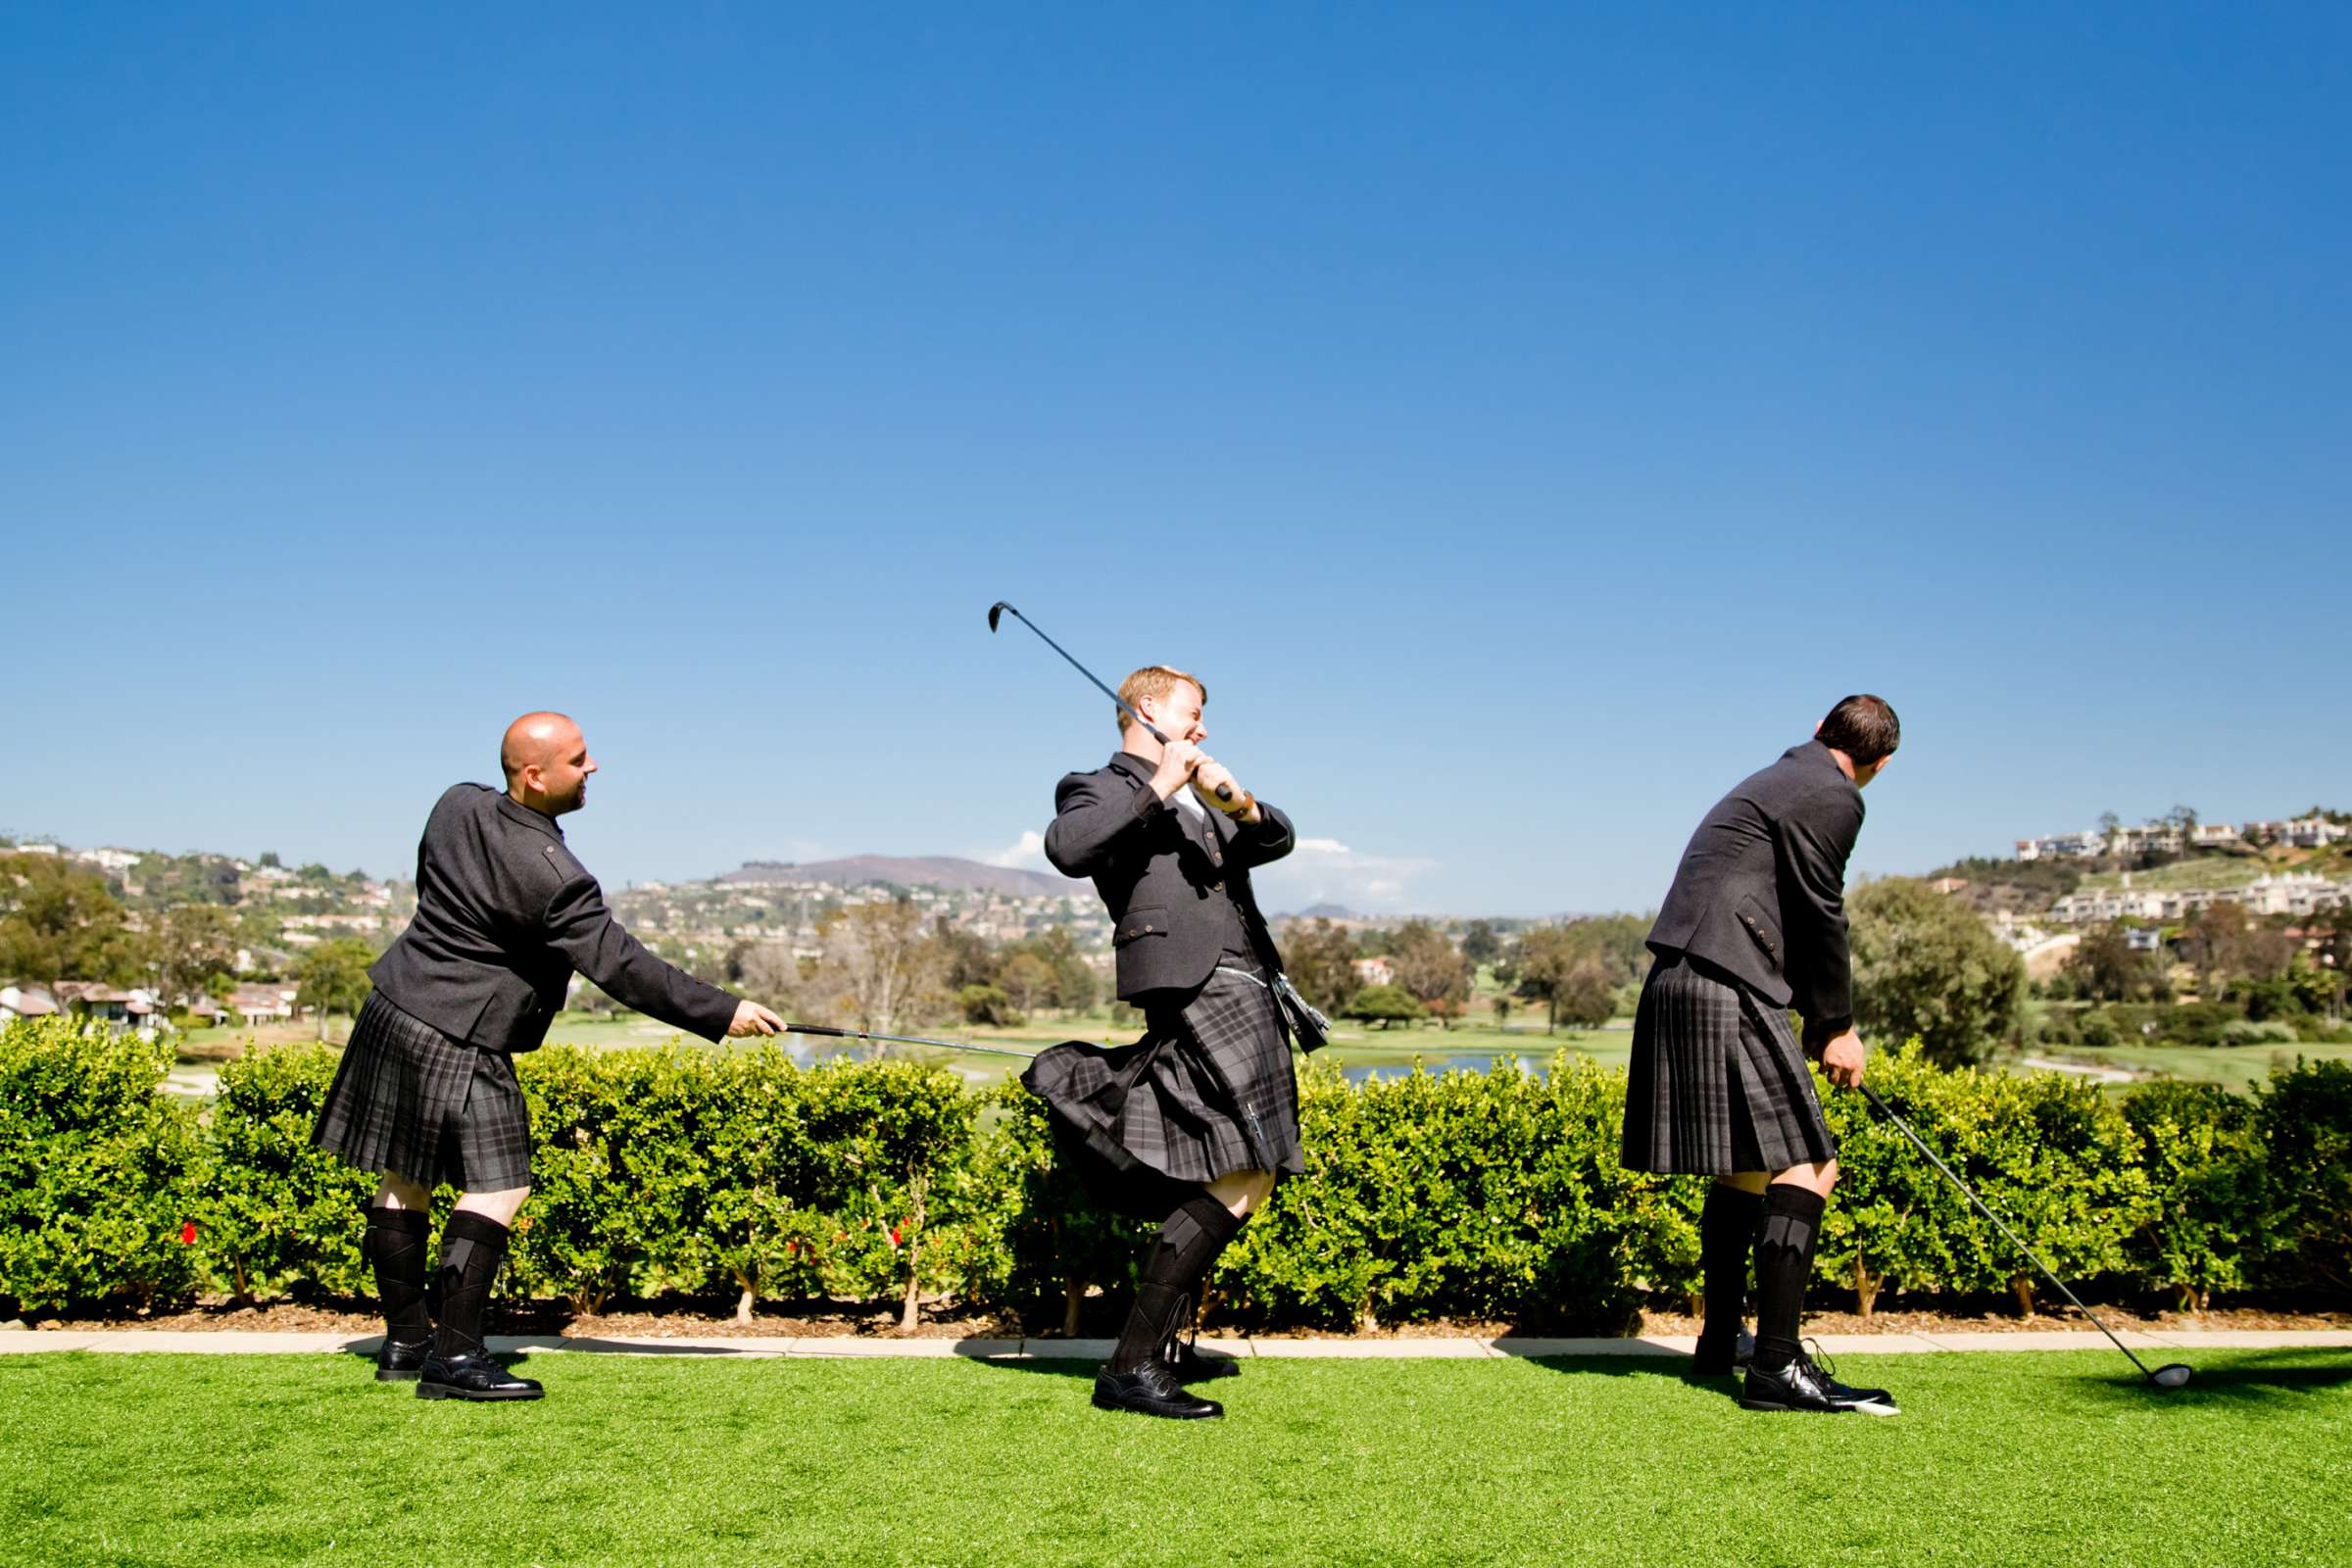 Omni La Costa Resort & Spa Wedding coordinated by MS Weddings & Events, Jennifer and Liam Wedding Photo #361478 by True Photography